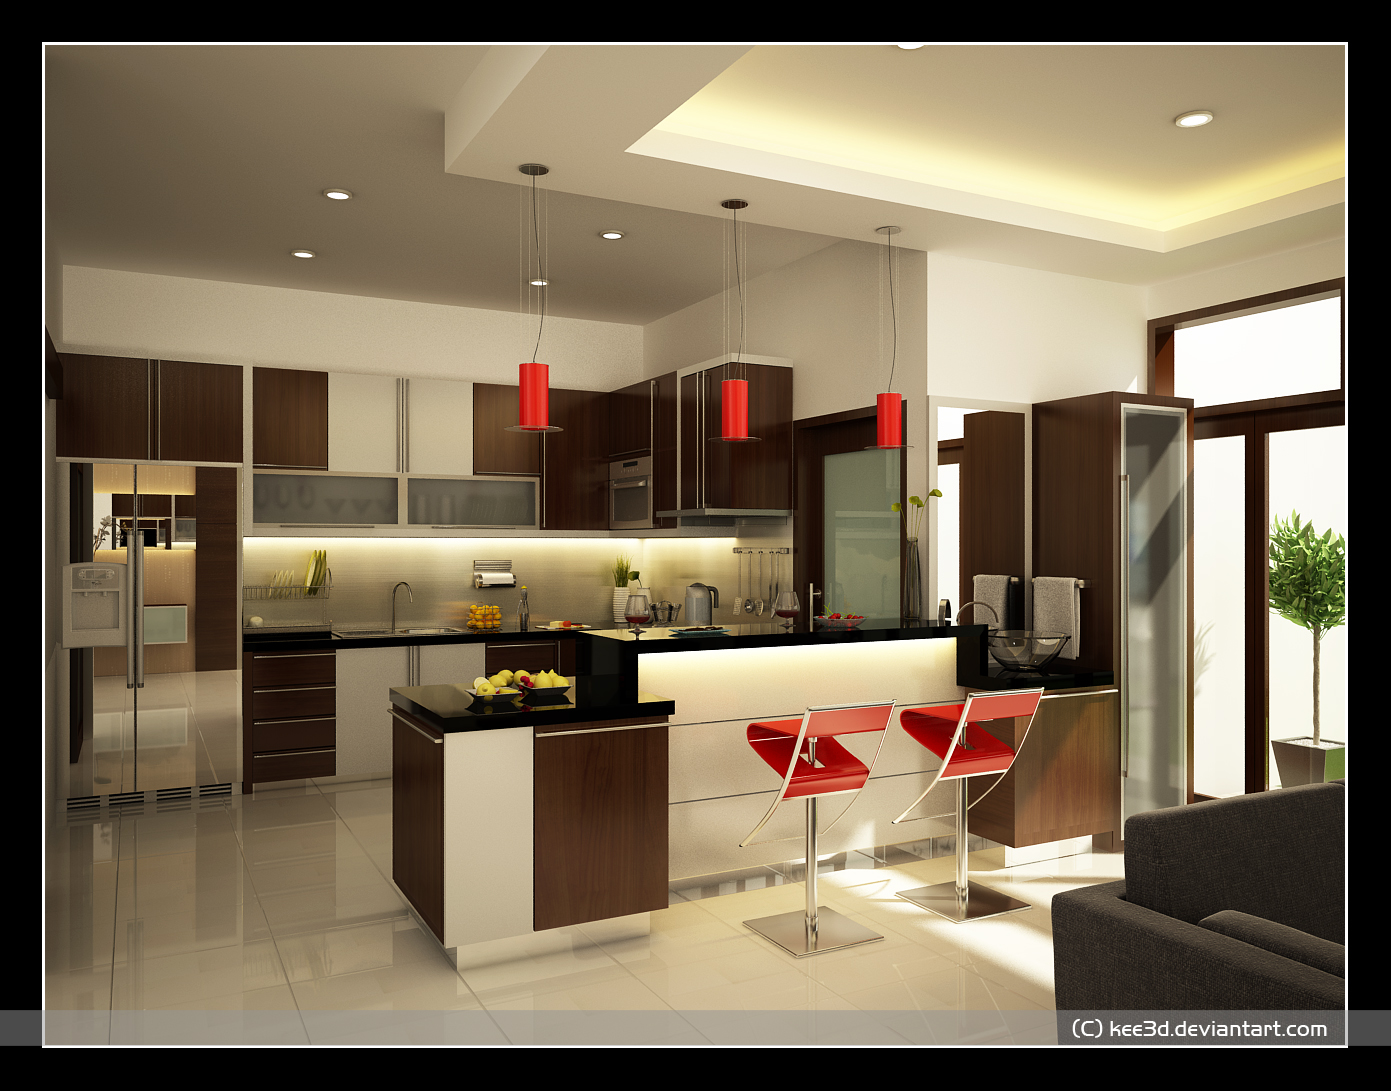 Kitchen design ideas for Home improvement ideas kitchen